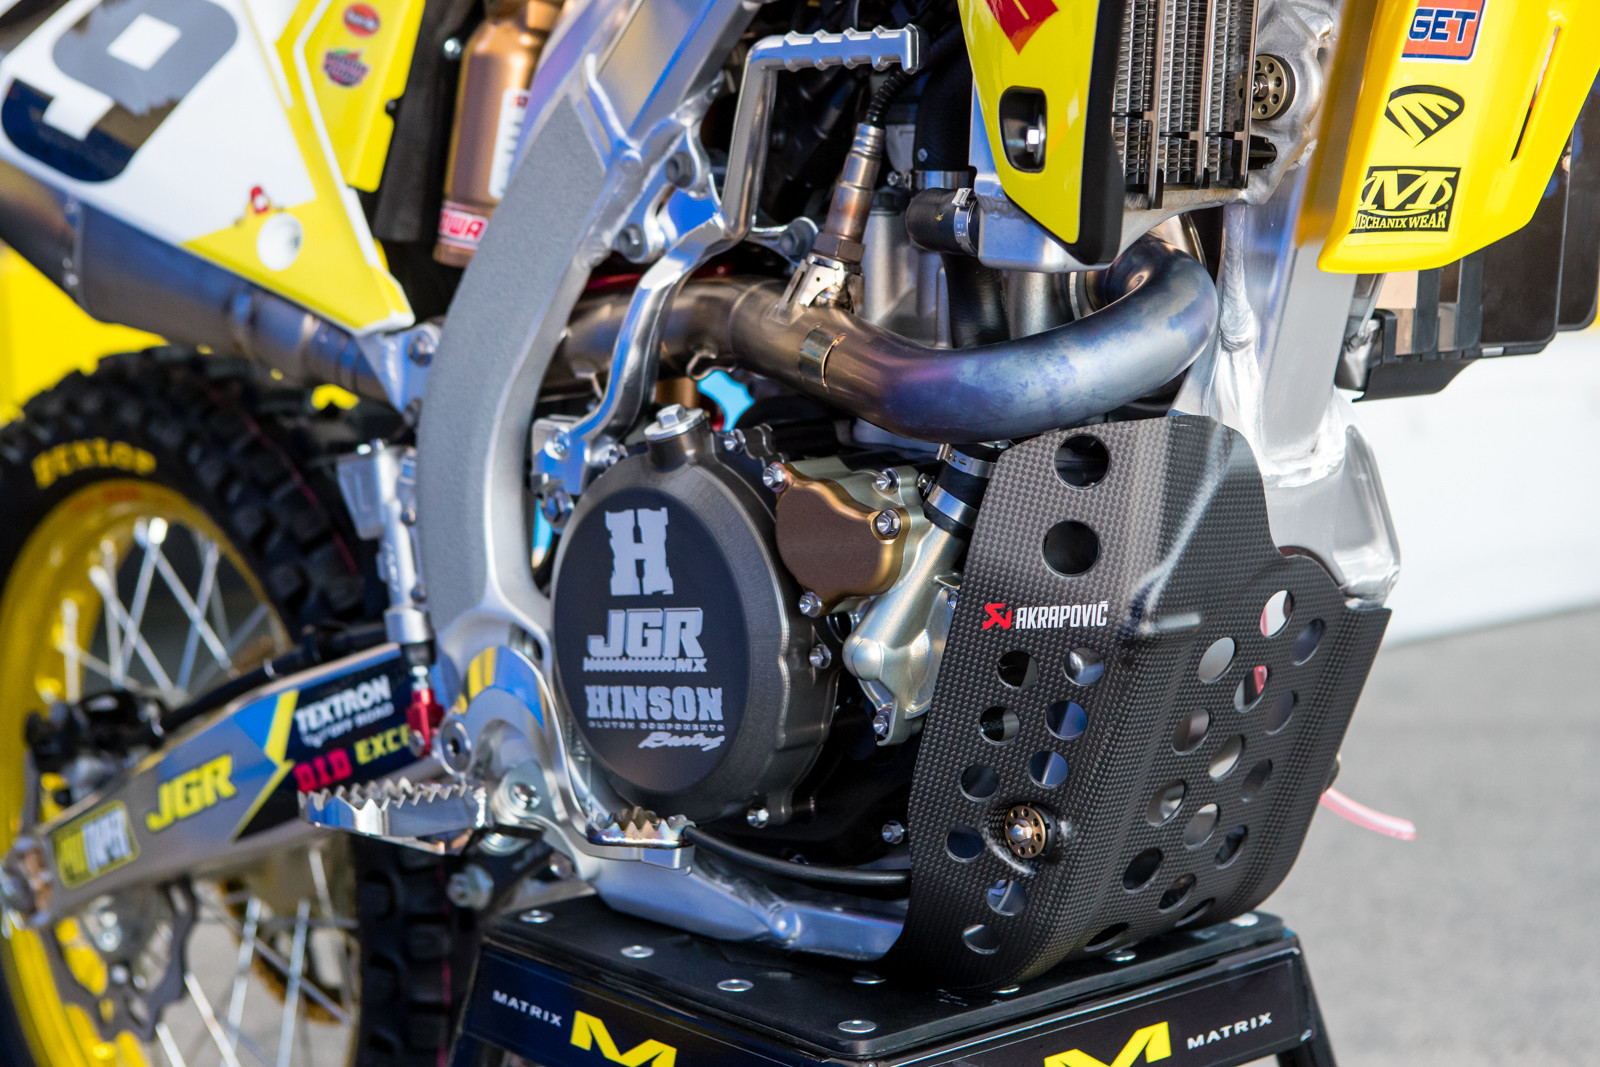 Although they don't use their exhausts, factory Suzuki and now JGR uses quite a few carbon components from Akrapovic.